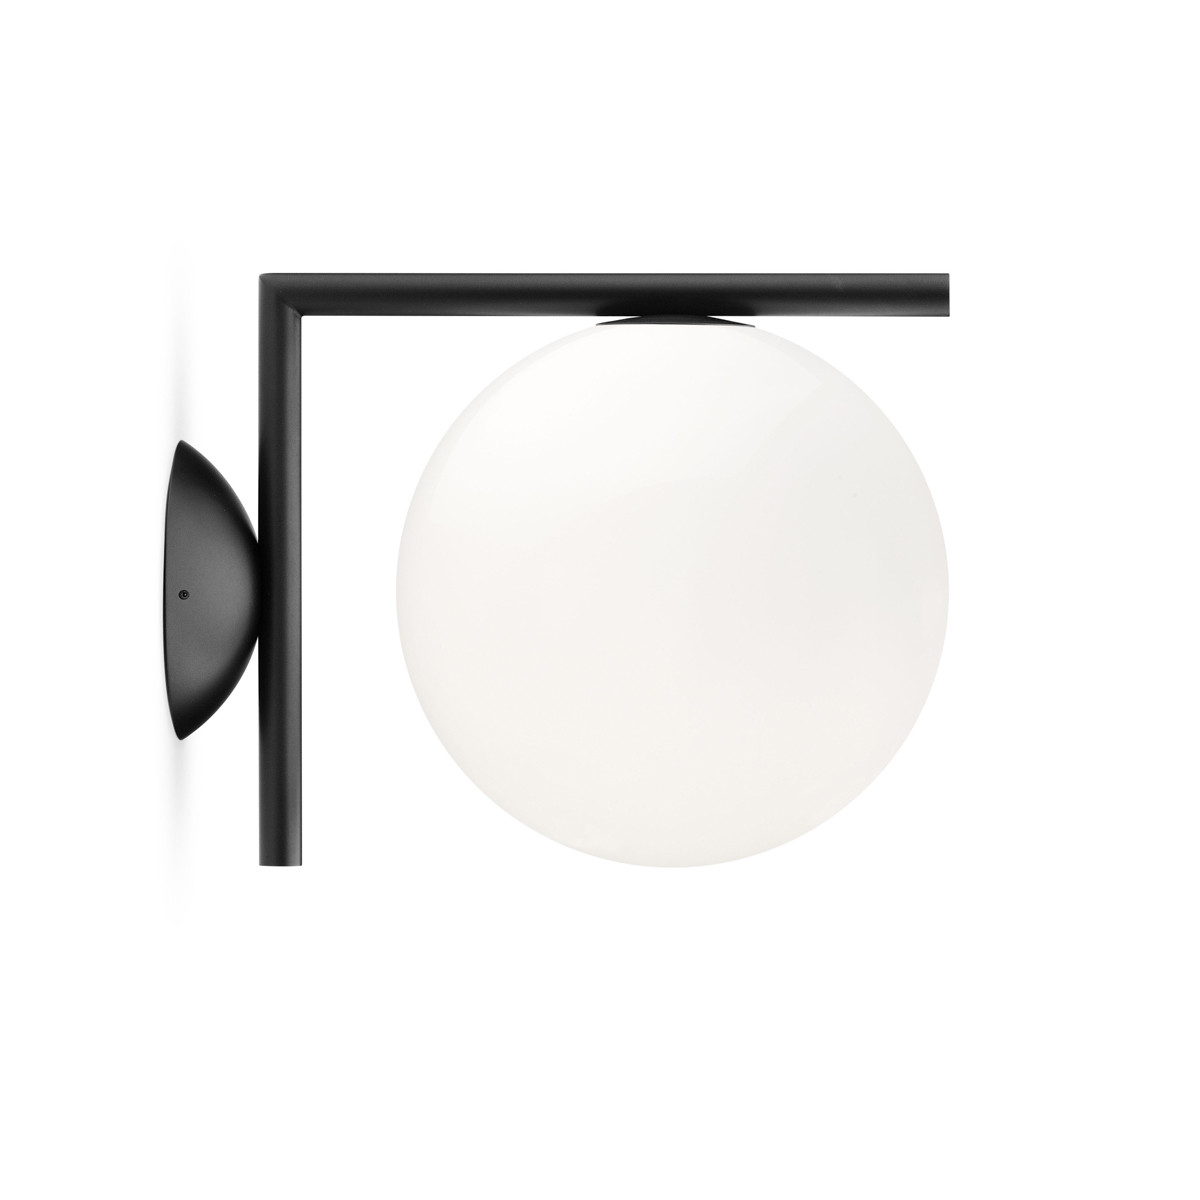 Flos IC C/W1 Ceiling/Wall Light Outdoor